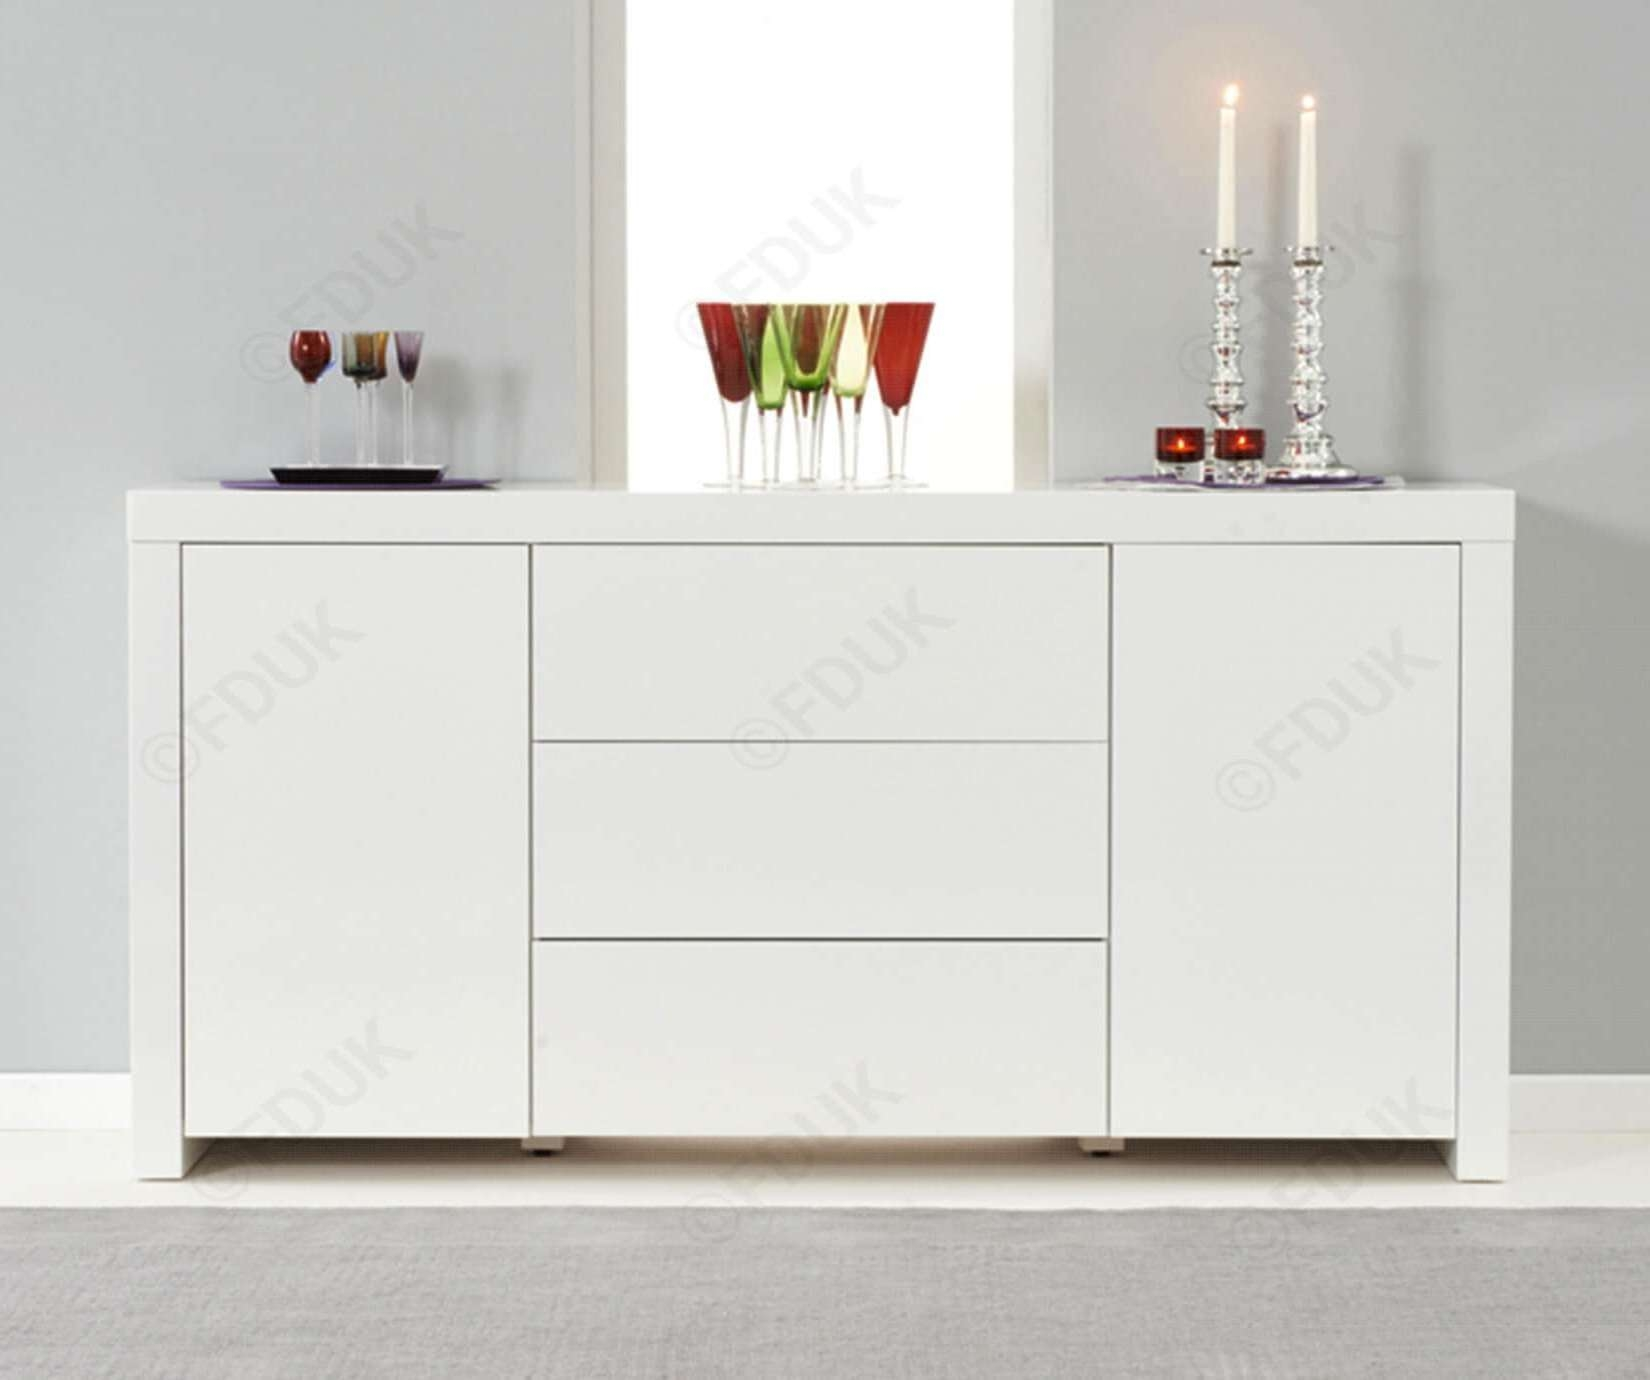 20 Photos High Gloss Sideboards For High Gloss Cream Sideboards (View 1 of 20)